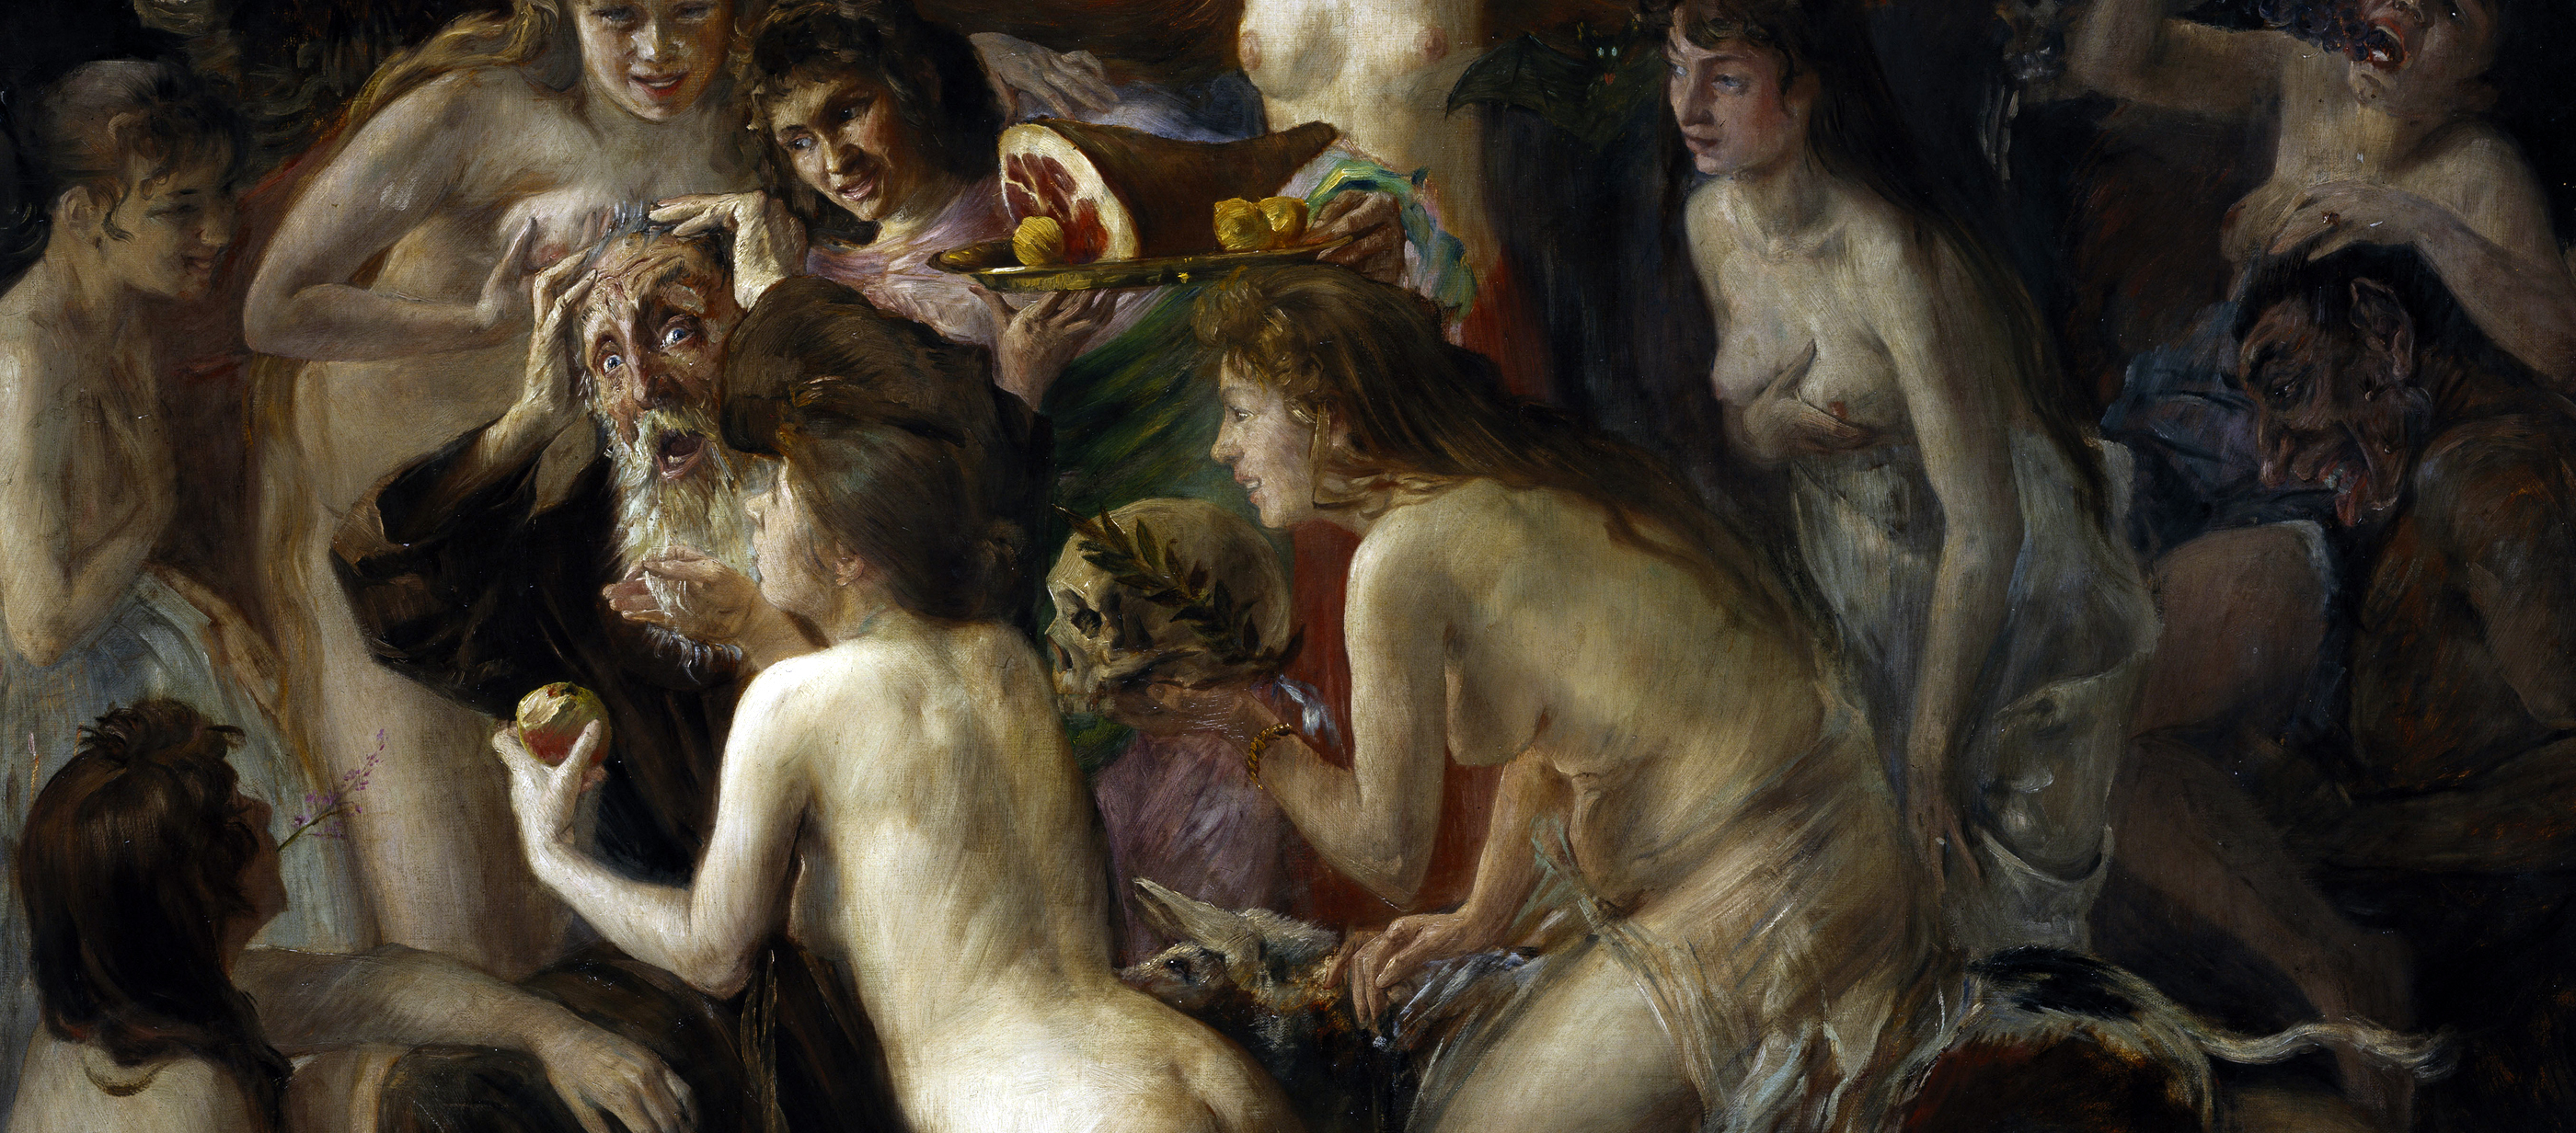 Temptation of St. Anthony, by Lovis Corinth, 1897.